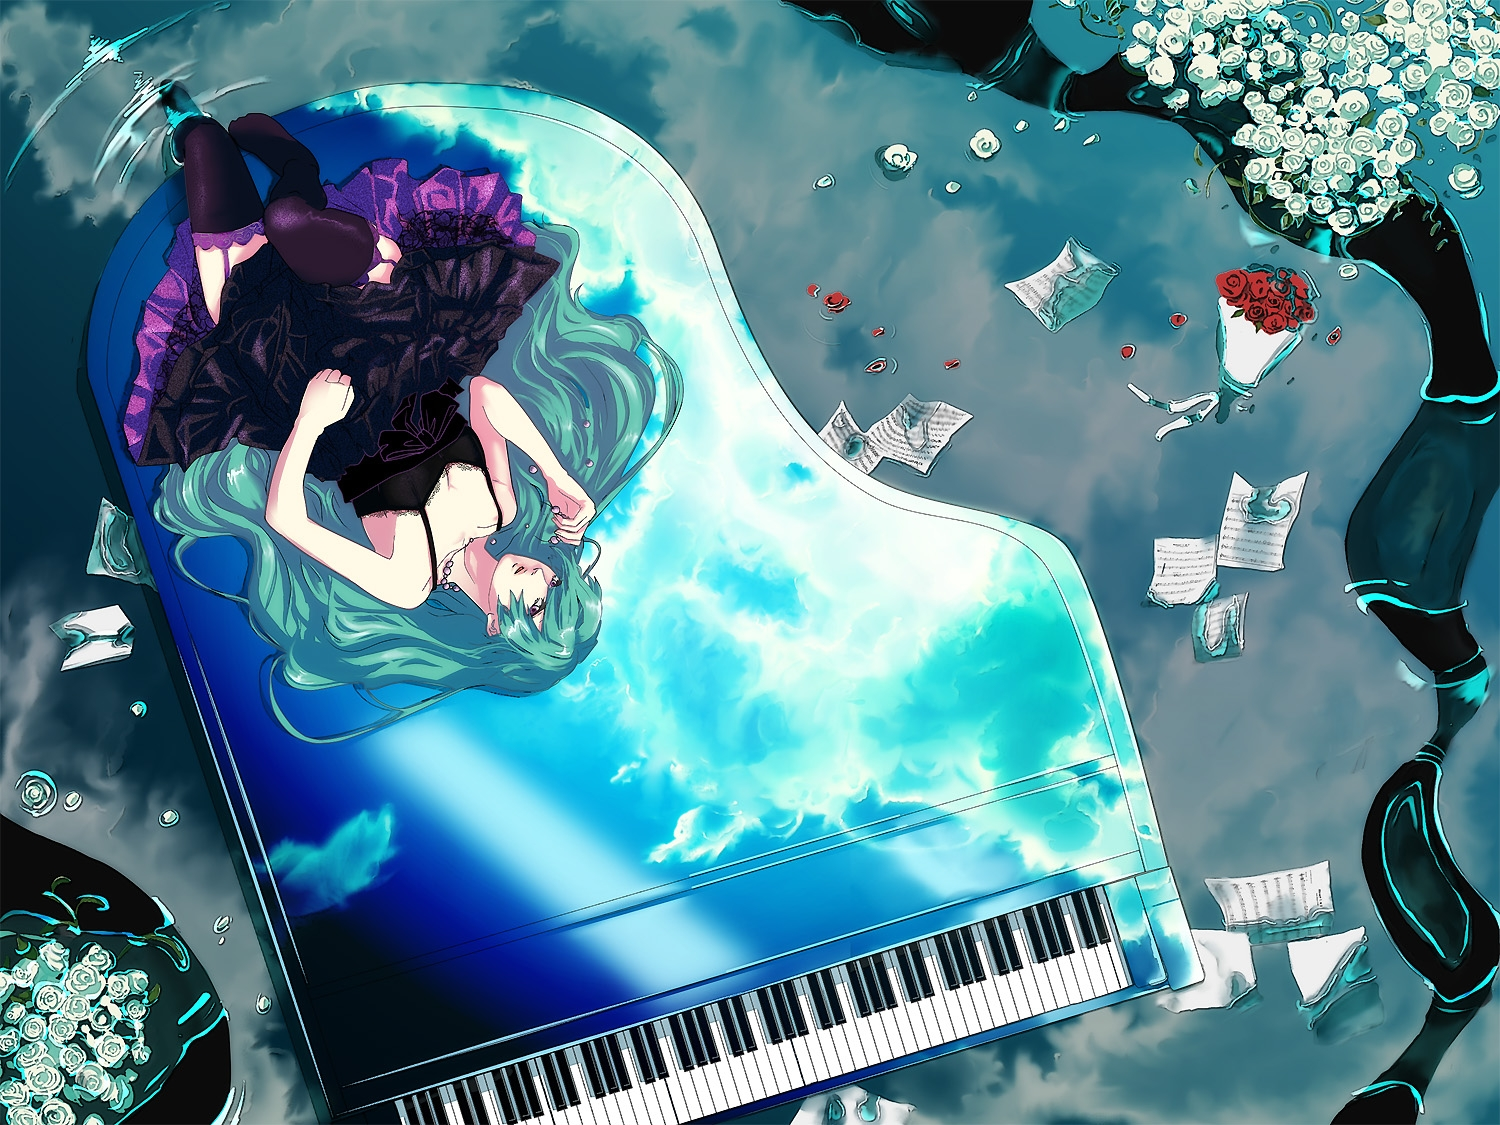 Flower, Vocaloid, Petal, Twin Tails, Pearls, White Flower, Tie, Sheet Music, Musical Instrument, Music, Pixiv, Zettai Ryouiki, Water, Thigh Highs, Solo, Rose, Piano, Paper, Necklace, Music Note, Long Hair, Frills, Laying Down, Black Outfit, Laces, Green Eyes, Clouds, Black Dress, Hatsune Miku, Ranmaru (Iro), Jewelry, Green Hair, Grand Piano, Garter Belt, Female, Dress, Bows (Fashion), Bouquet, Beads, Alternate Hairstyle